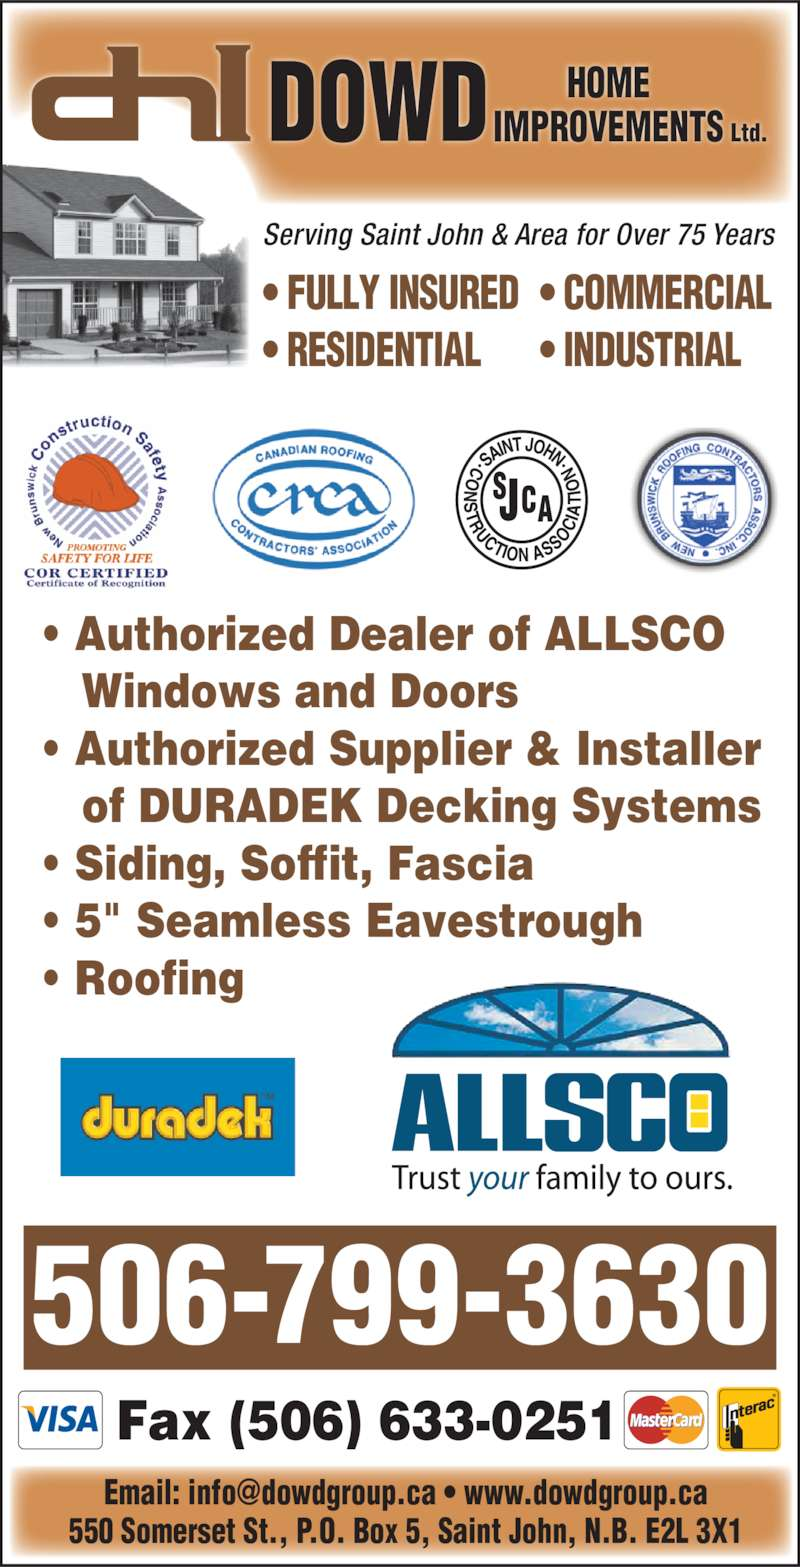 "Dowd Roofing Inc (506-632-0022) - Display Ad - Serving Saint John & Area for Over 75 Years 506-799-3630 Fax (506) 633-0251 • Authorized Dealer of ALLSCO    Windows and Doors • Authorized Supplier & Installer    of DURADEK Decking Systems • Siding, Soffit, Fascia • 5"" Seamless Eavestrough • FULLY INSURED • RESIDENTIAL • COMMERCIAL • Roofing 550 Somerset St., P.O. Box 5, Saint John, N.B. E2L 3X1 Ltd. HOME IMPROVEMENTSDOWD • INDUSTRIAL"